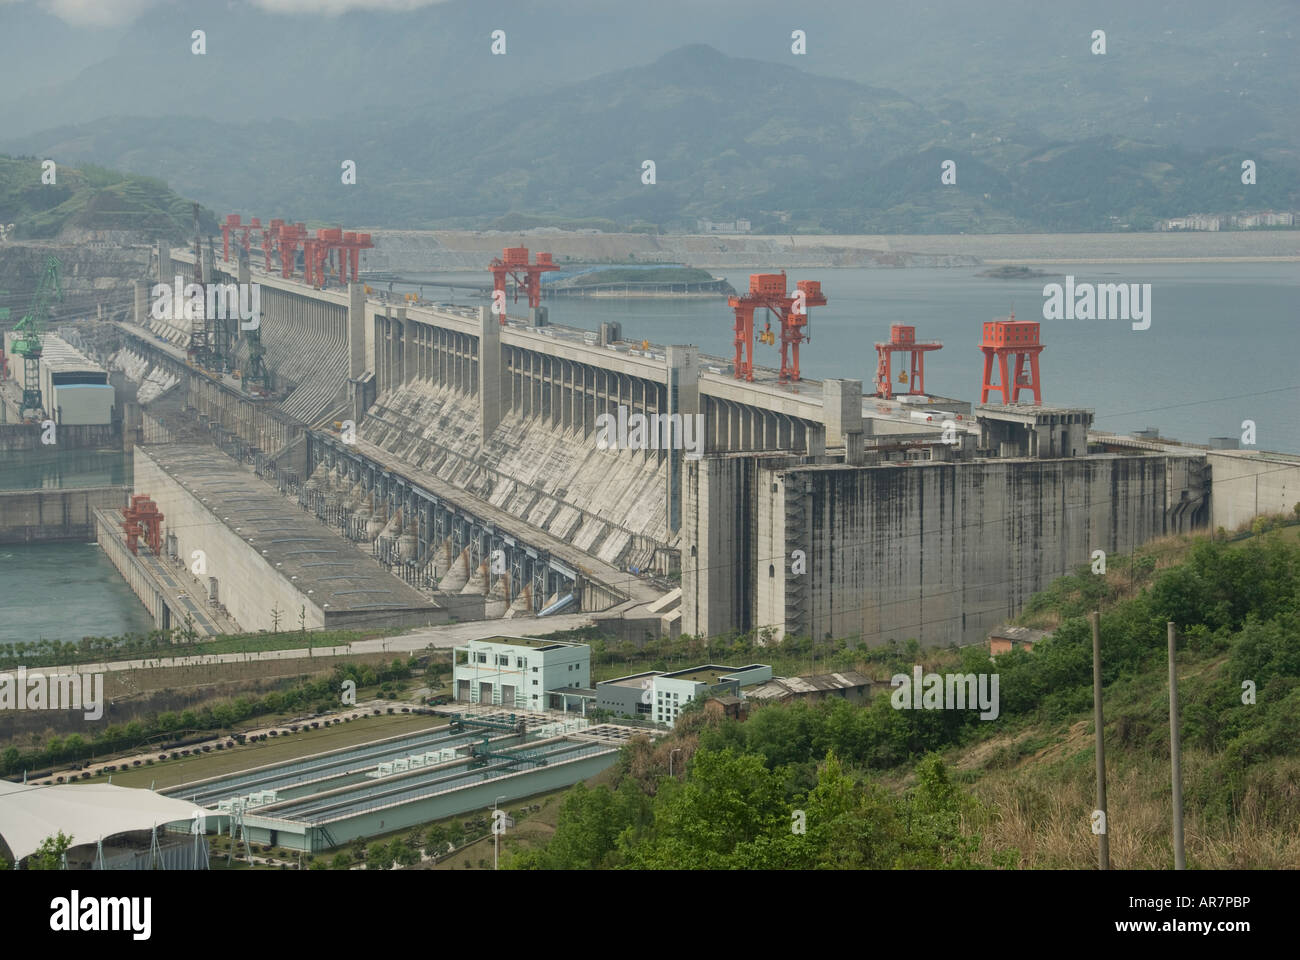 three gorges dam project Three gorges dam is the greatest hydropower project in the world it caused the hot discussion about the advantages and disadvantages both in home and abroad.